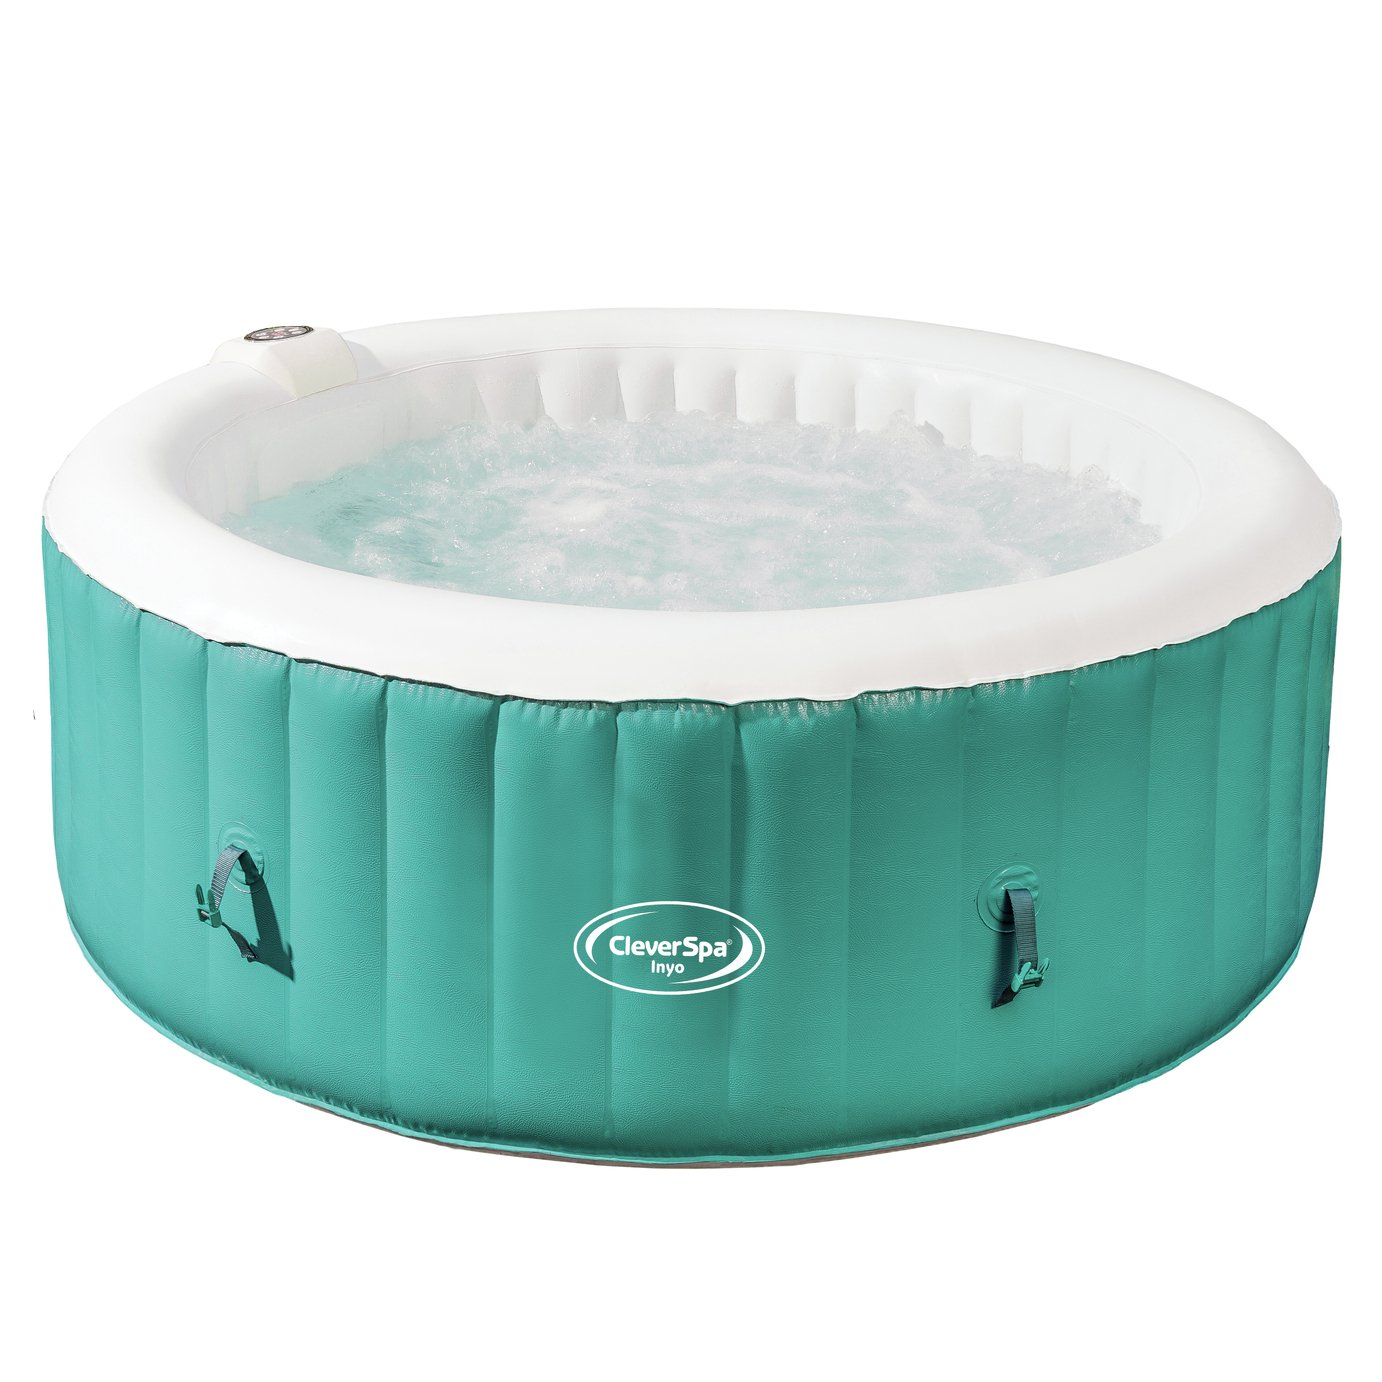 CleverSpa Inyo 4 Person Hot Tub - In Store Collection Only